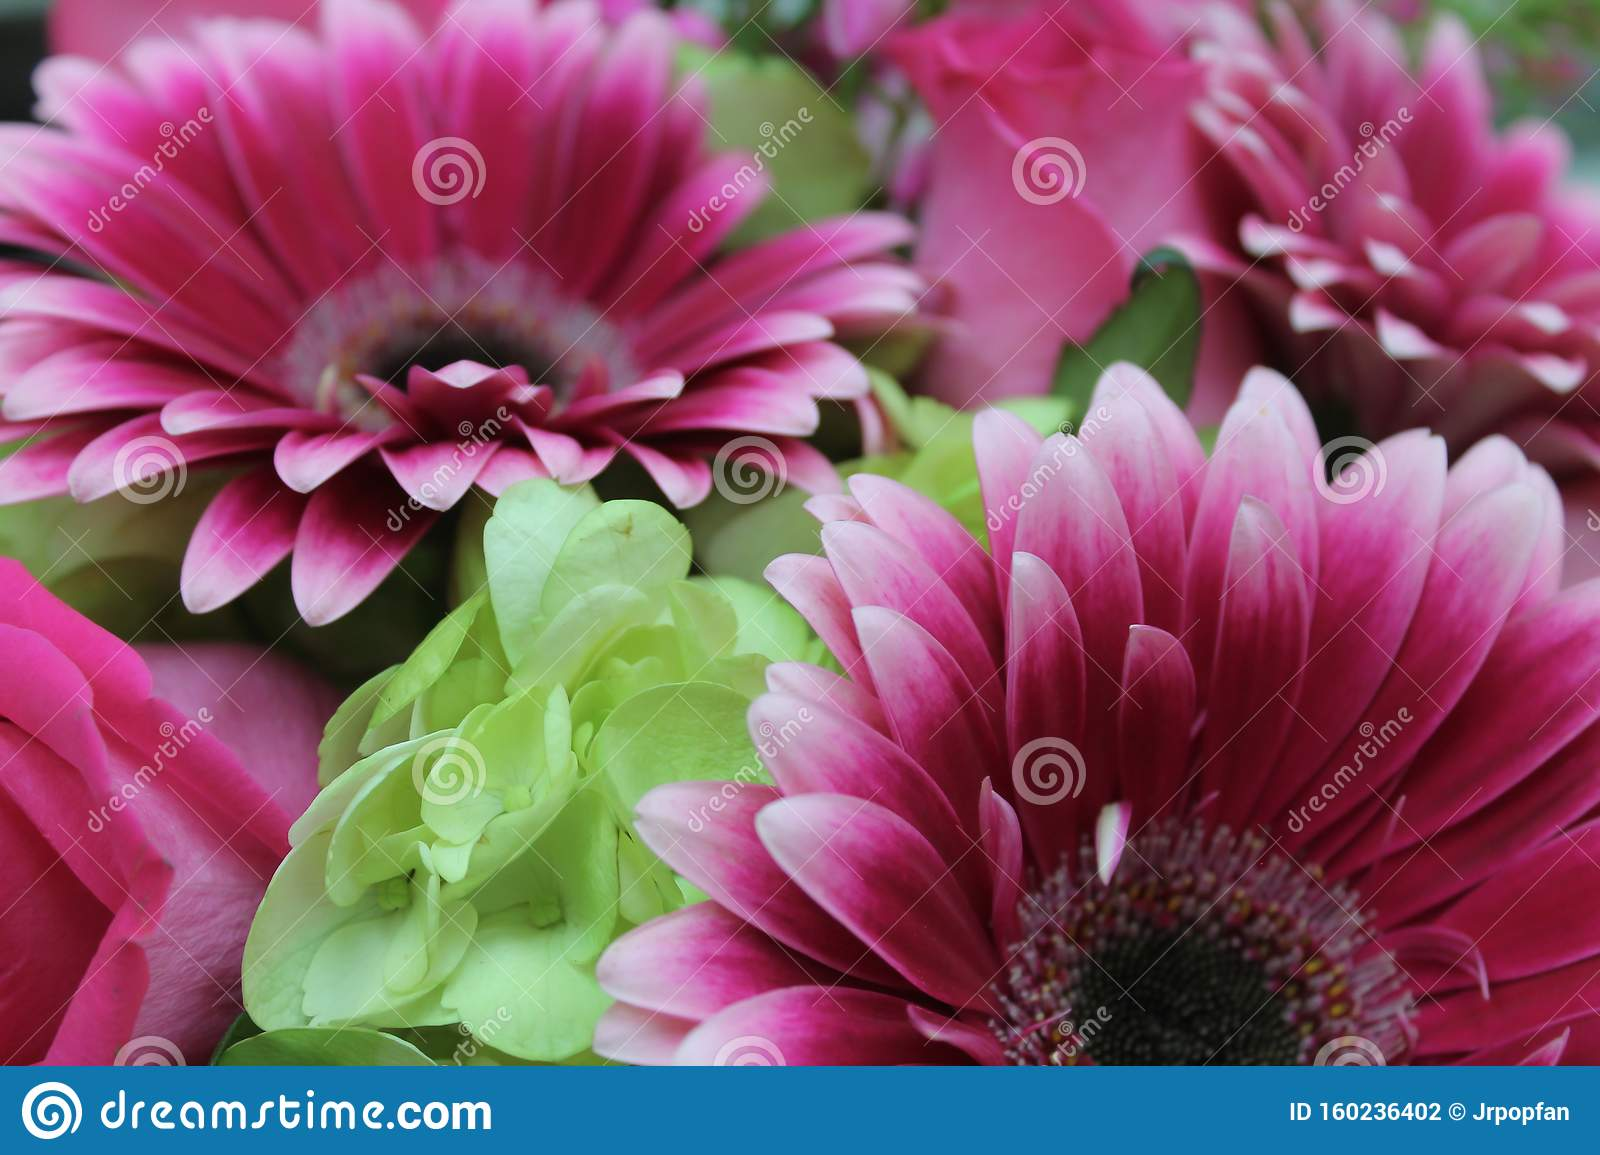 Hot Pink Gerbera Daisies Green Hydrangea Stock Photo Image Of